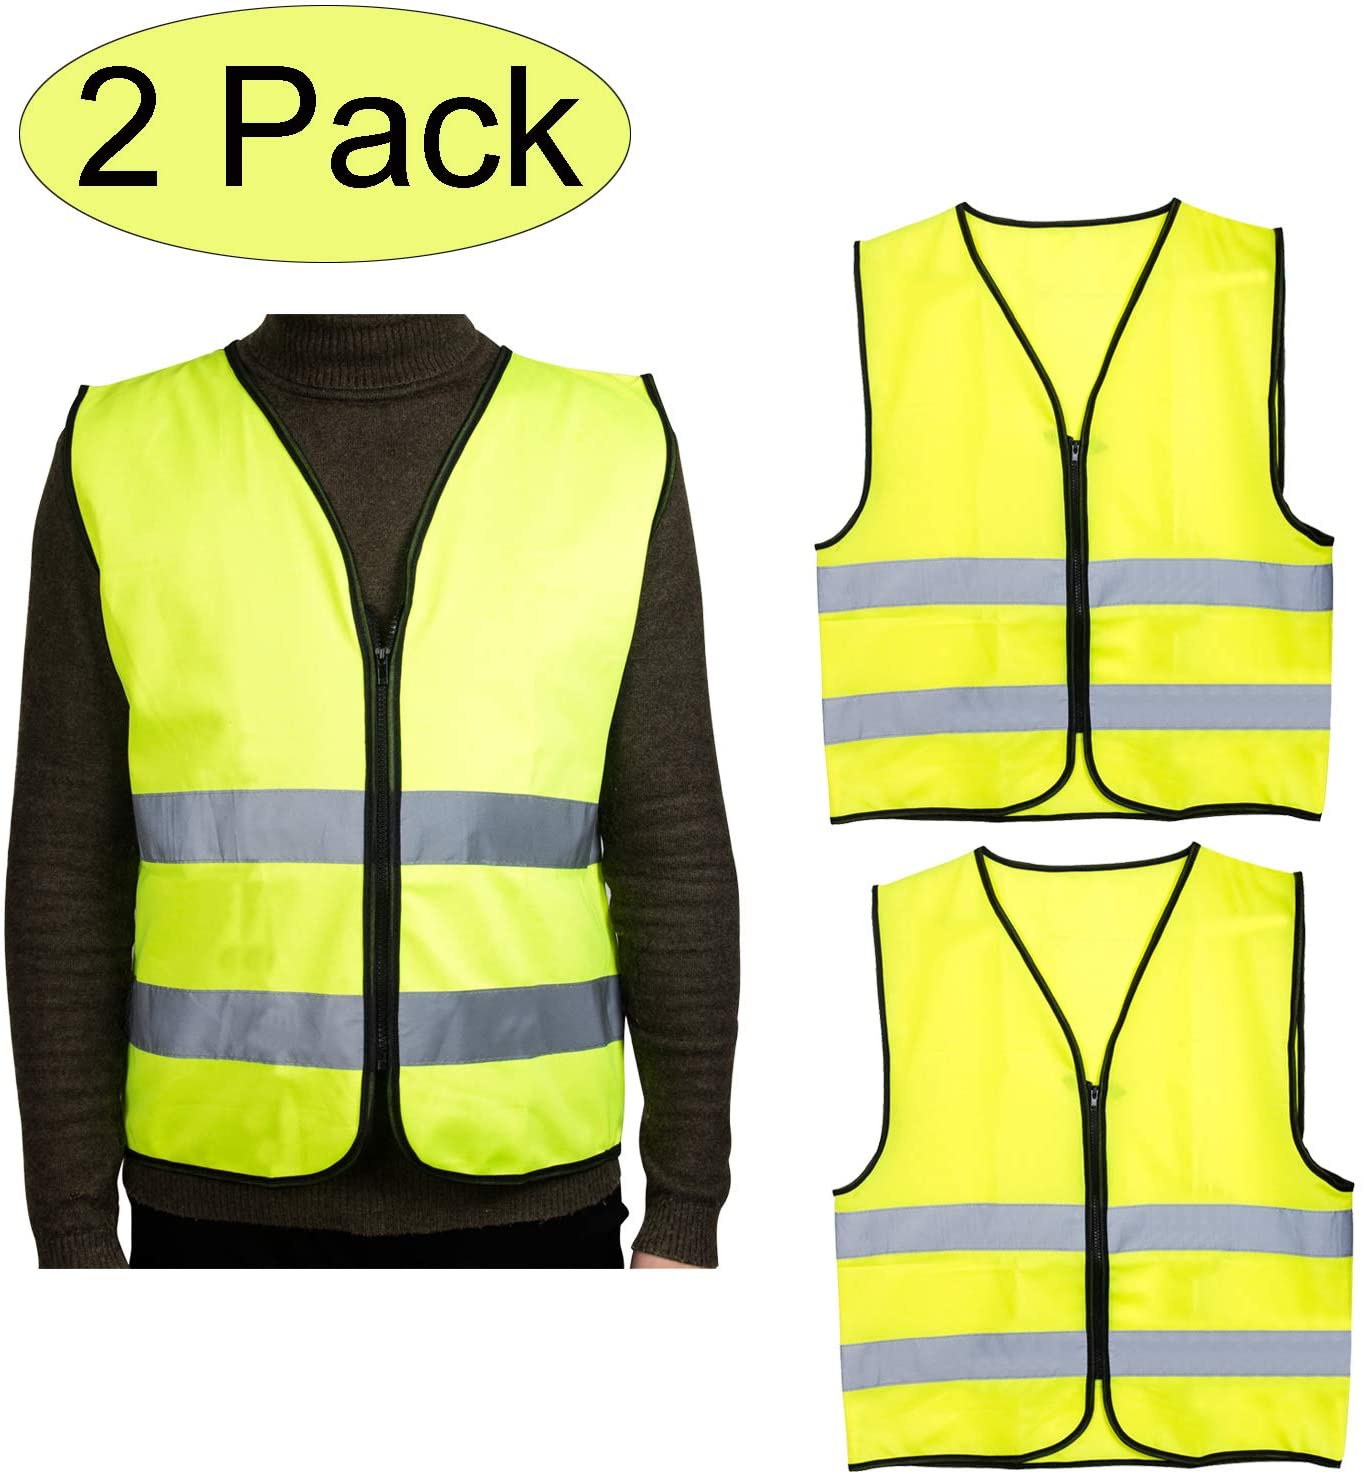 ThreeH Safety Vest with Reflective Strips High Visibility Zipper Front for Work, Running, Walking, Jogging, Cycling SA092 Yellow(2 Pack)